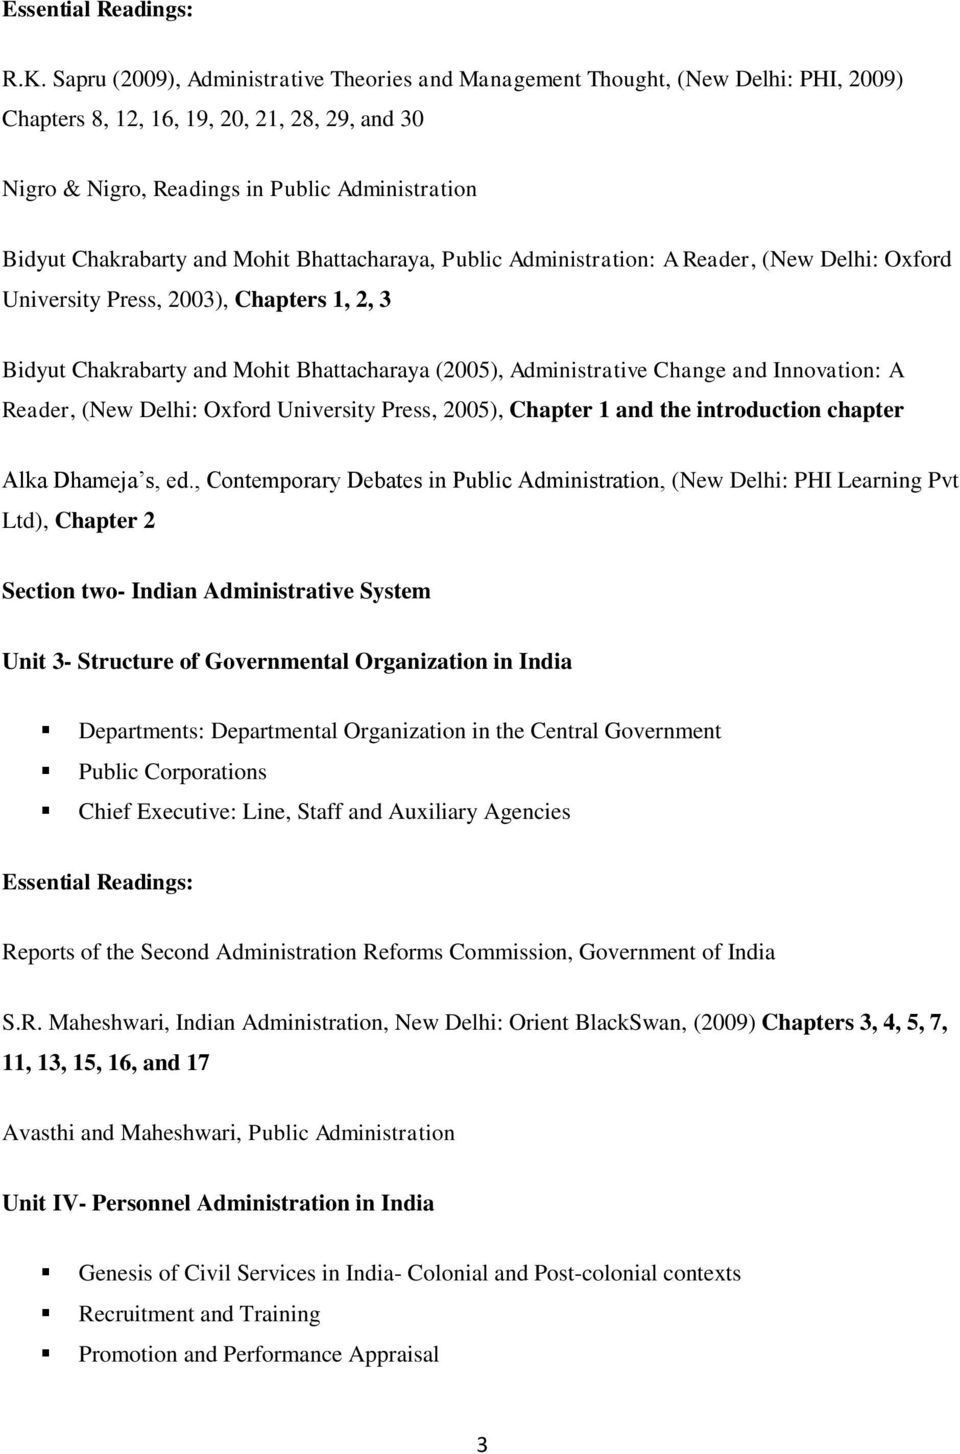 and Mohit Bhattacharaya, Public Administration: A Reader, (New Delhi: Oxford University Press, 2003), Chapters 1, 2, 3 Bidyut Chakrabarty and Mohit Bhattacharaya (2005), Administrative Change and